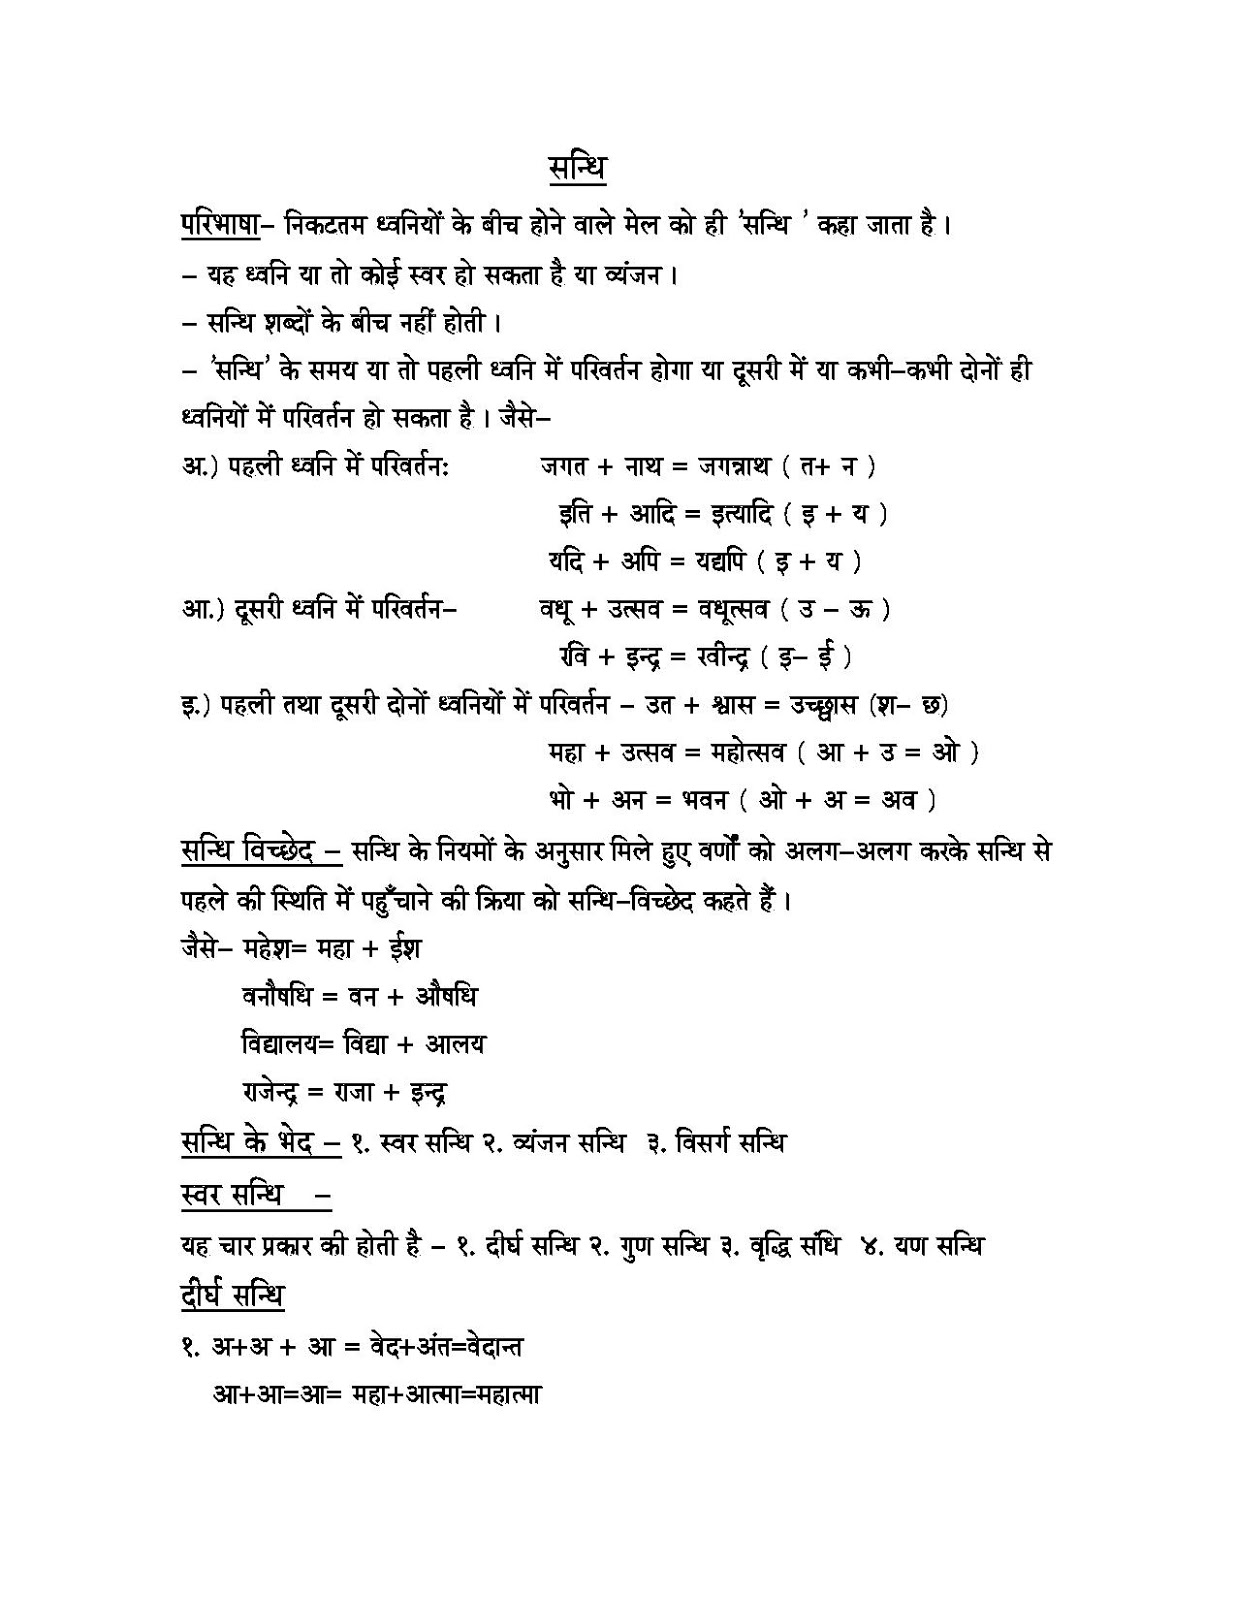 hindi grammar work sheet collection for classes 5 6 7 8 sandhis work sheet for cbse and. Black Bedroom Furniture Sets. Home Design Ideas